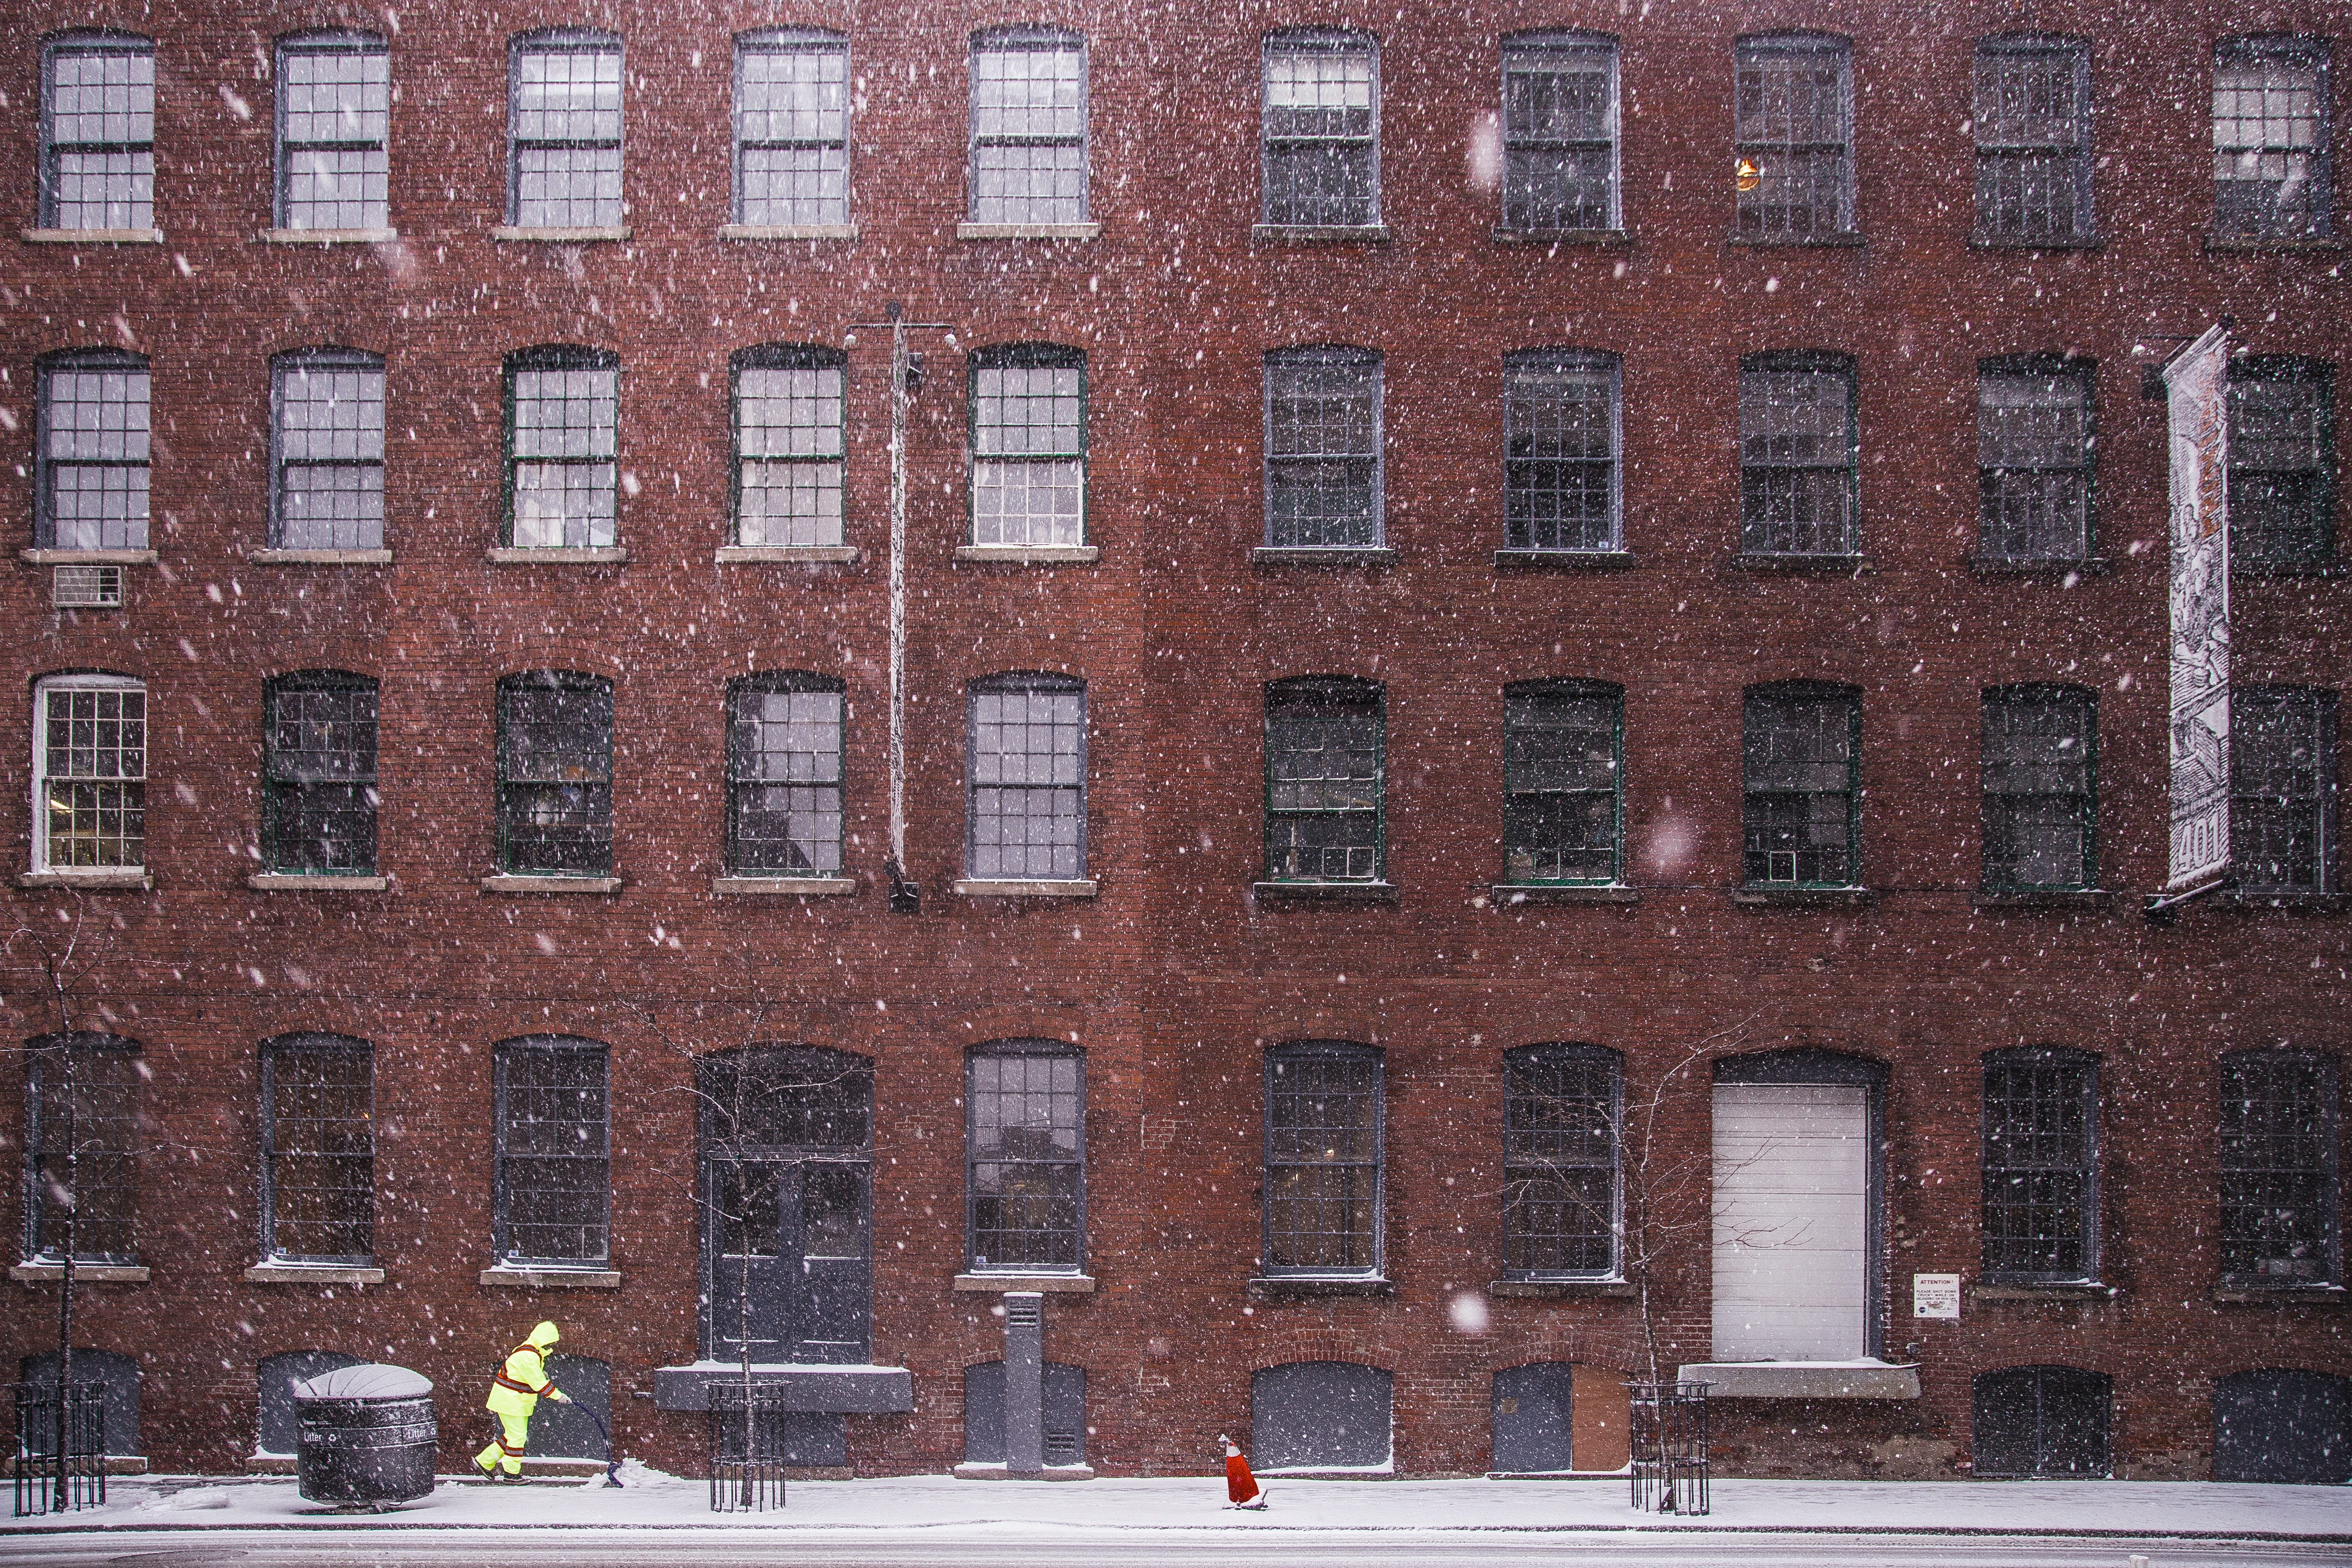 A person bundled in reflective yellow clothing shovels a sidewalk in front of a large red brick building during a snowfall